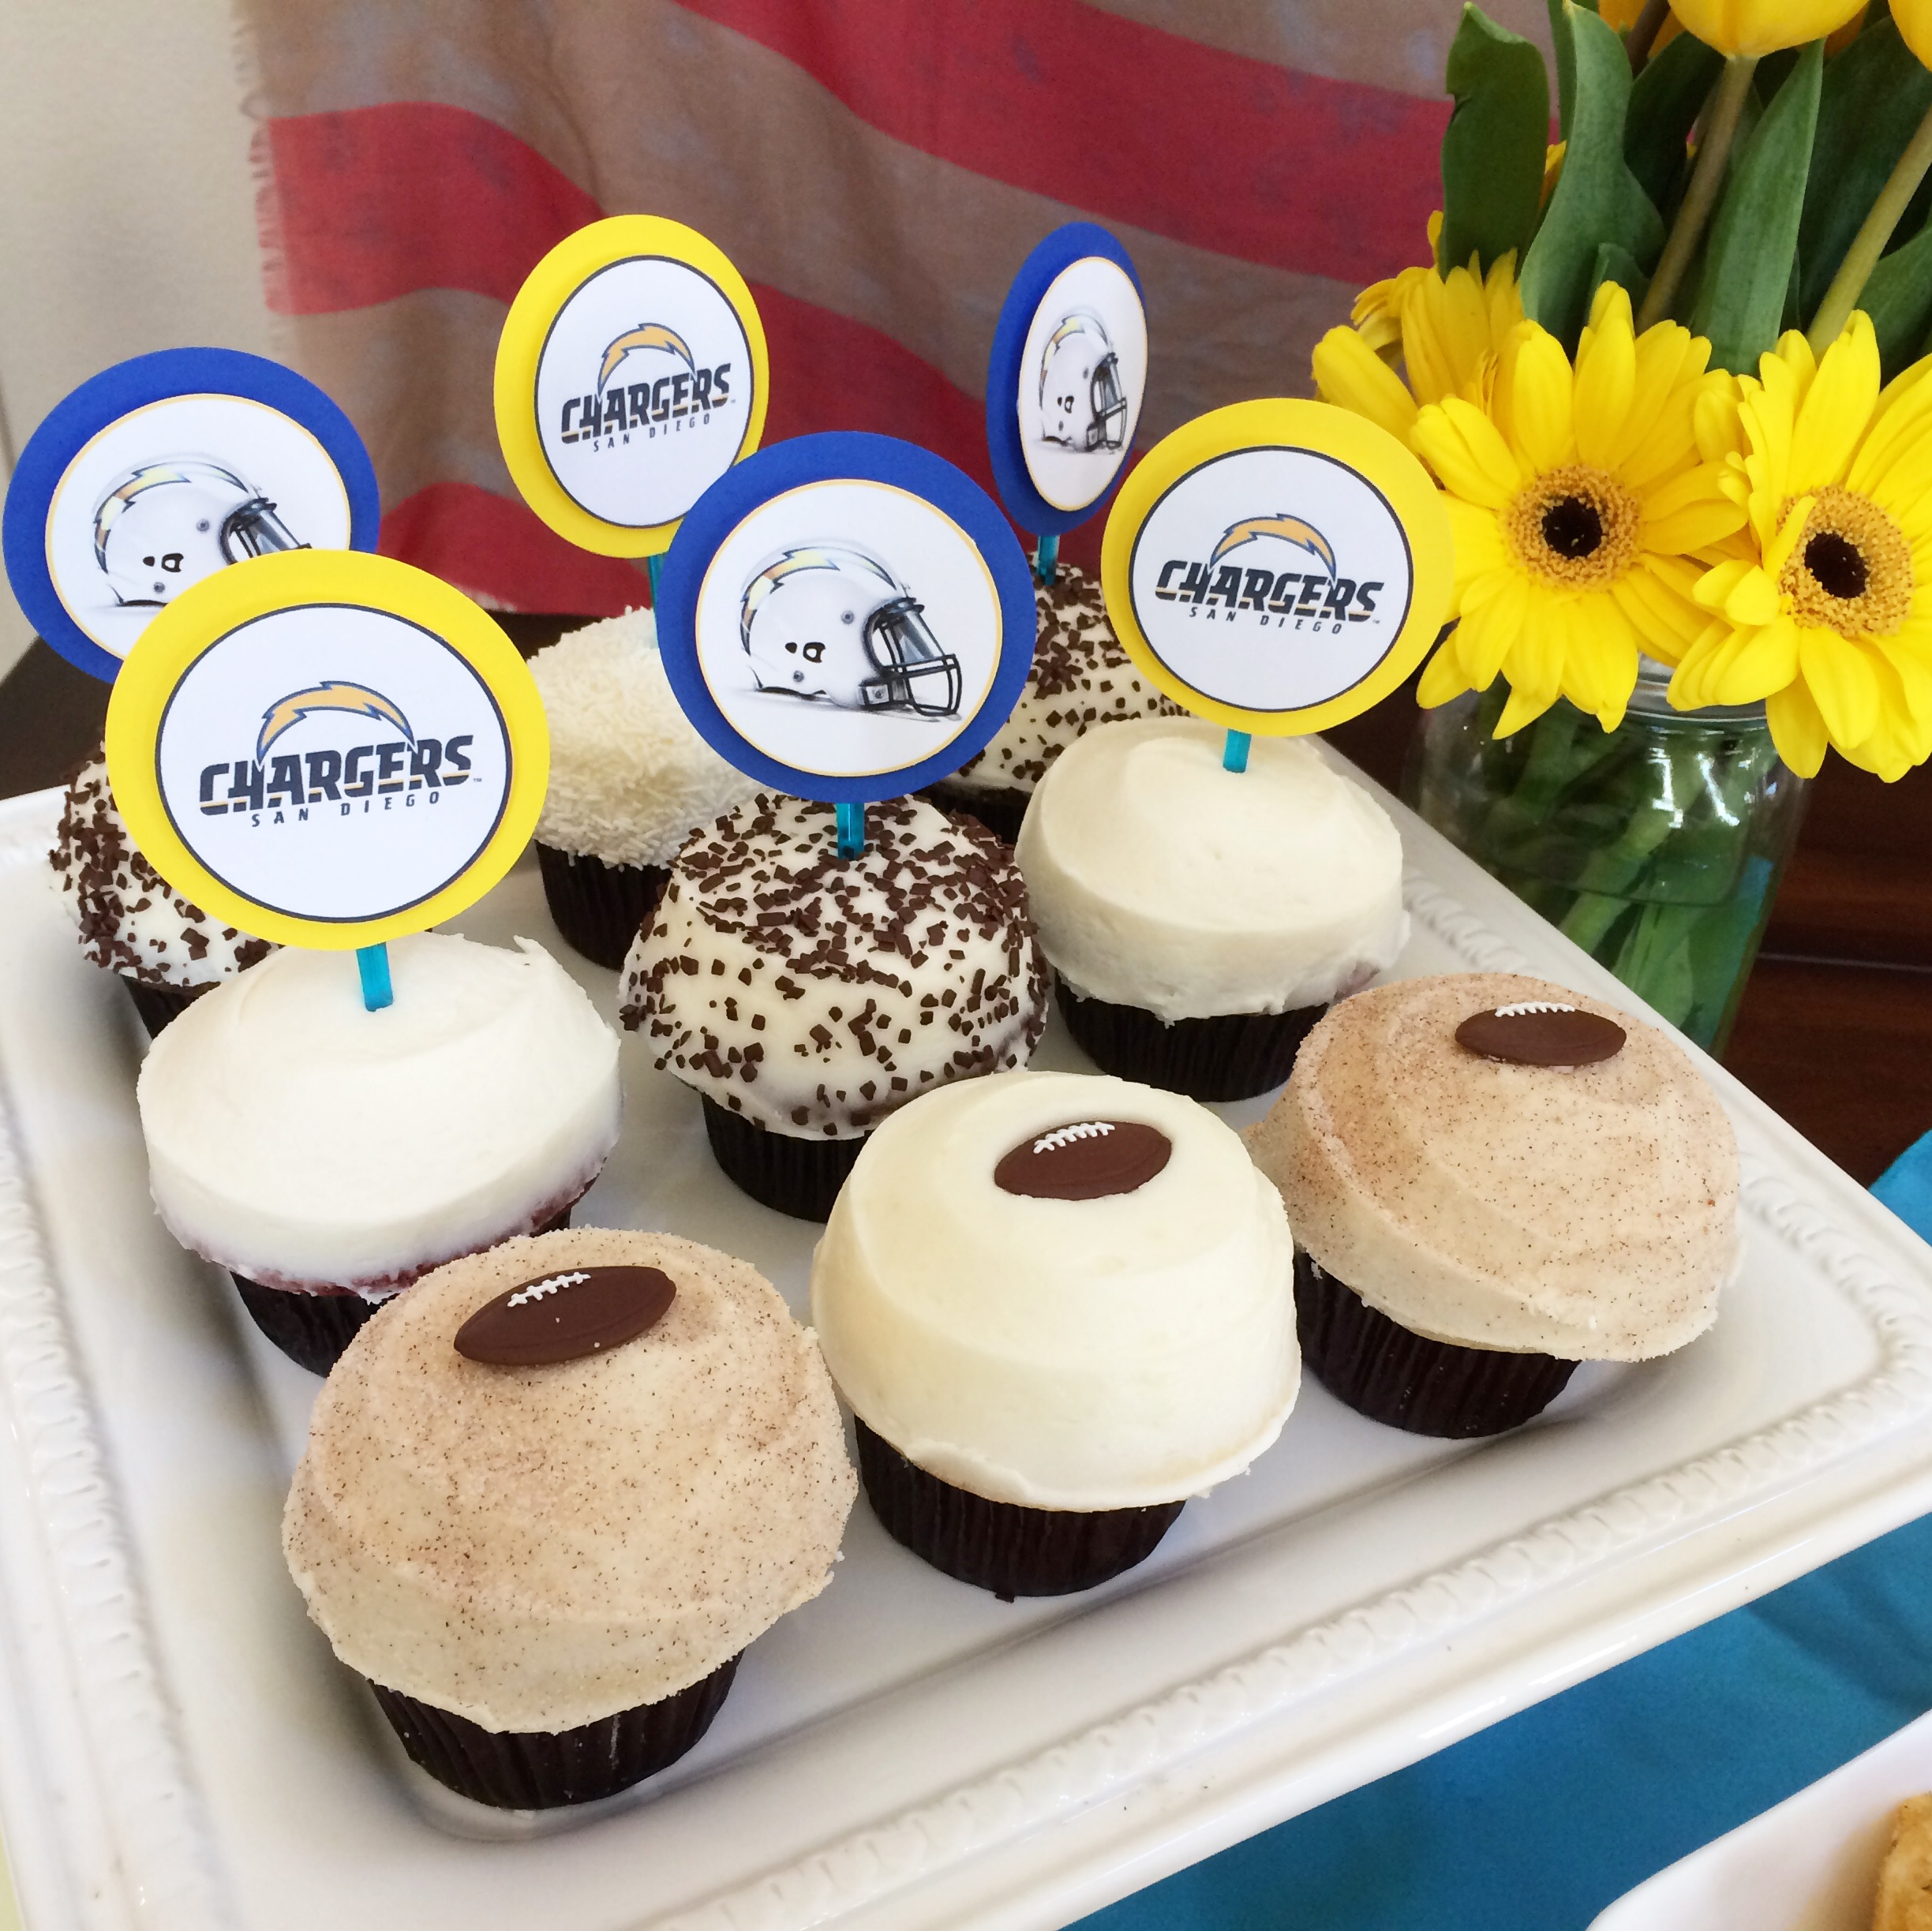 Chargers theme cupcakes. Go Bolts! Football cupcakes!